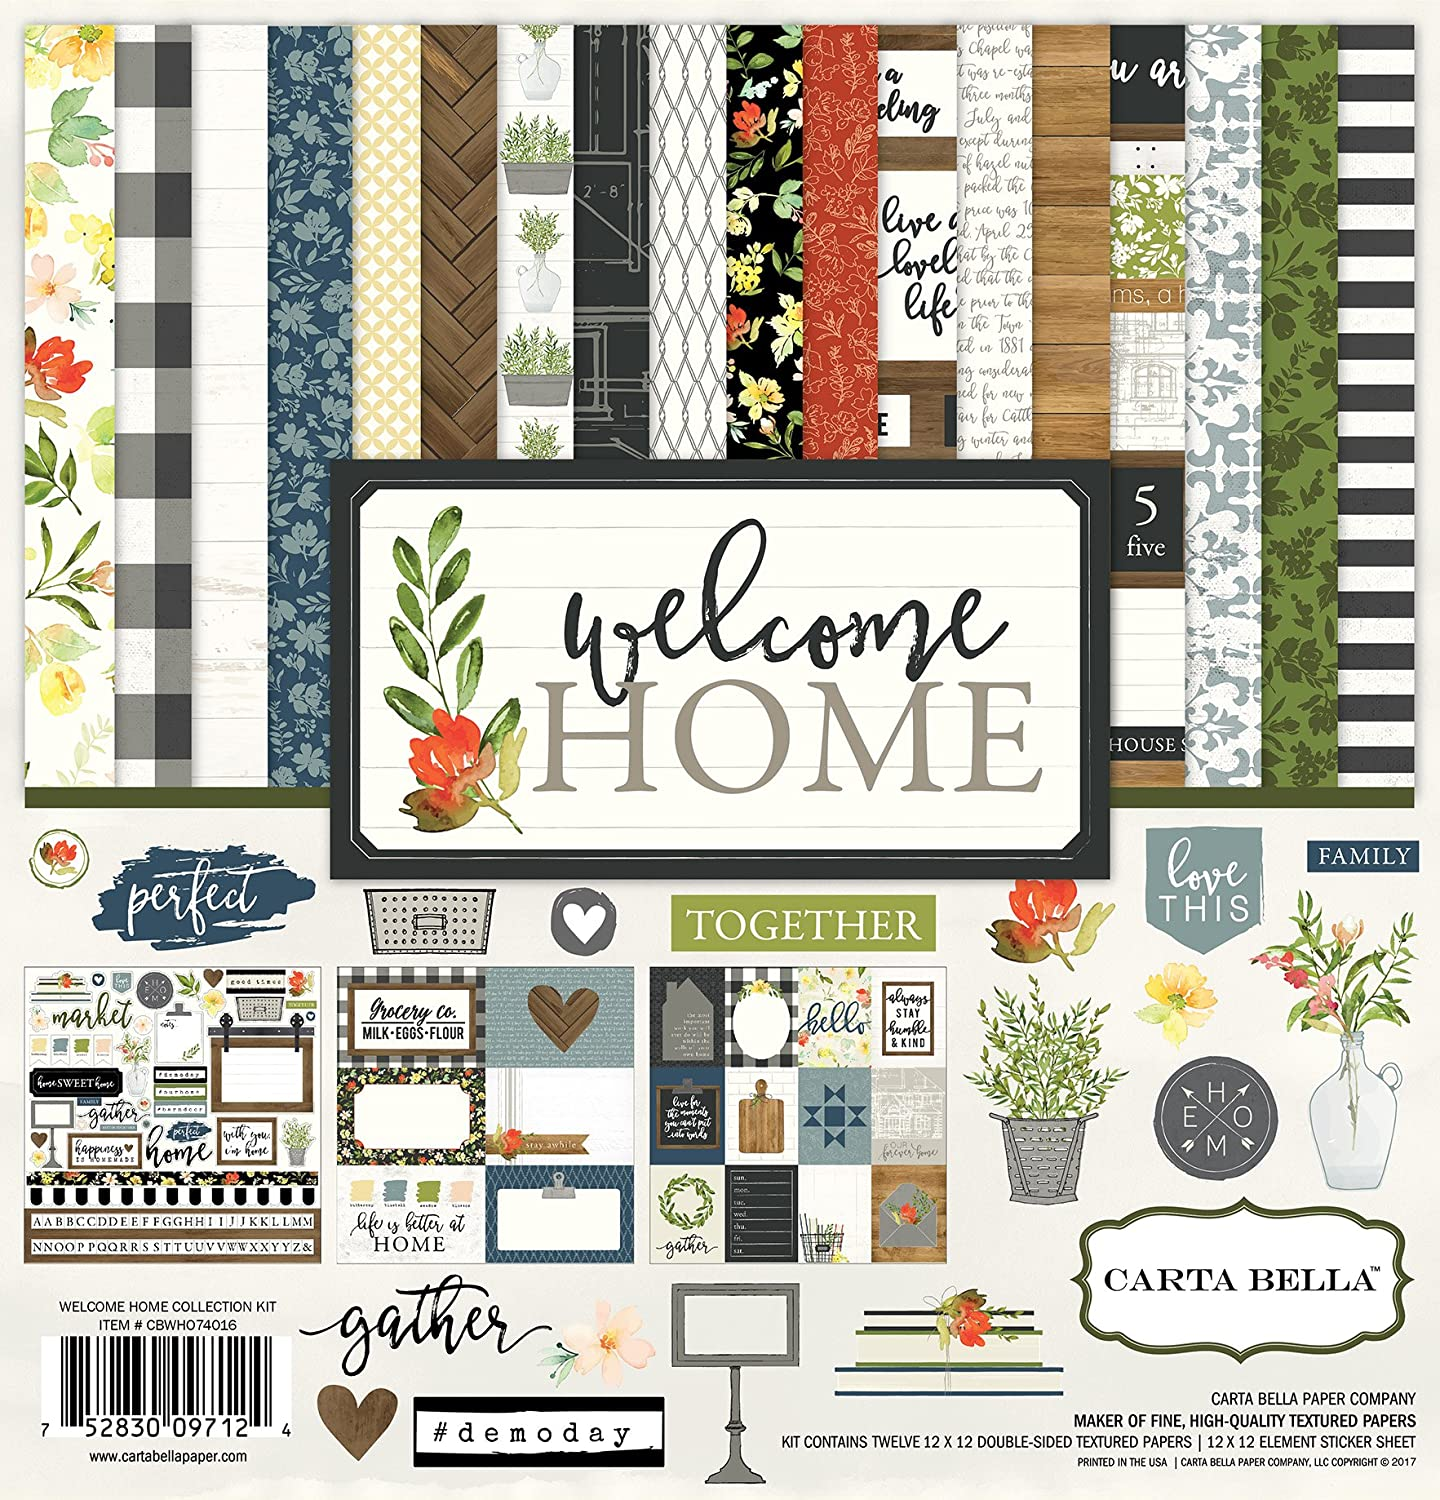 Carta Bella Paper Collection kit, Welcome Home, 12-x-12-inch Echo Park Paper Company CBWHO74016